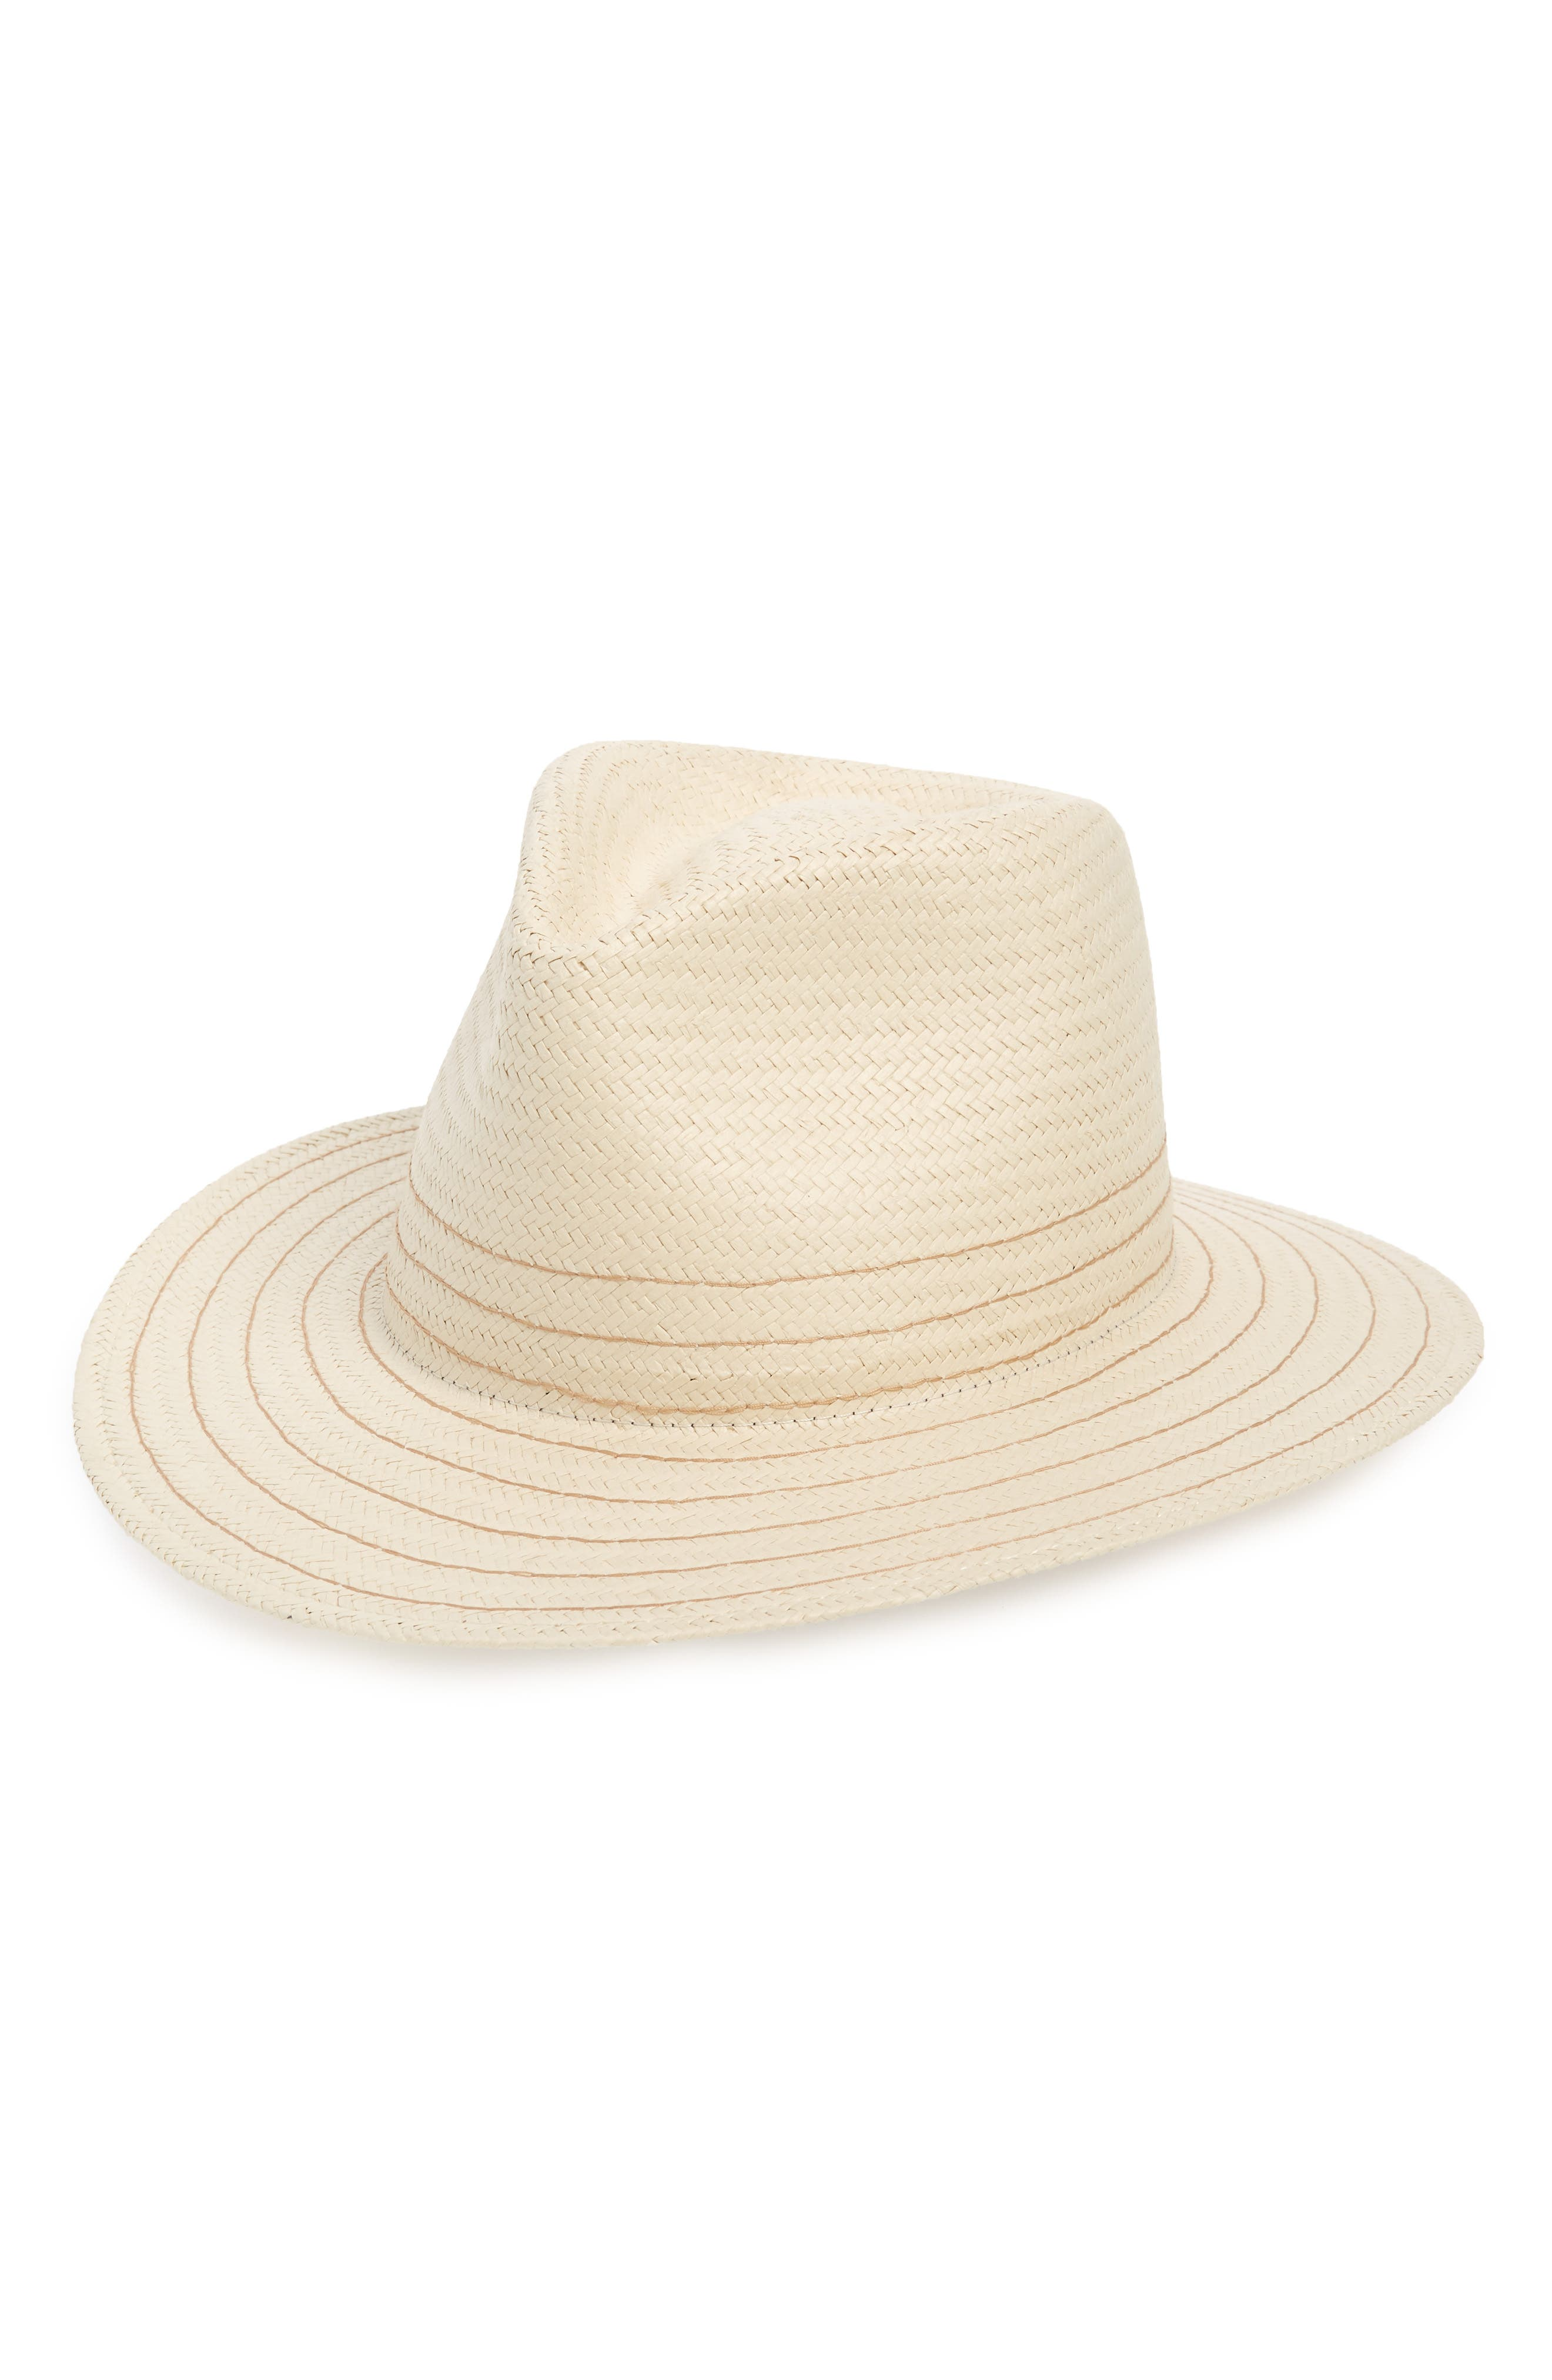 RAG & BONE Packable Straw Fedora, Main, color, NATURAL